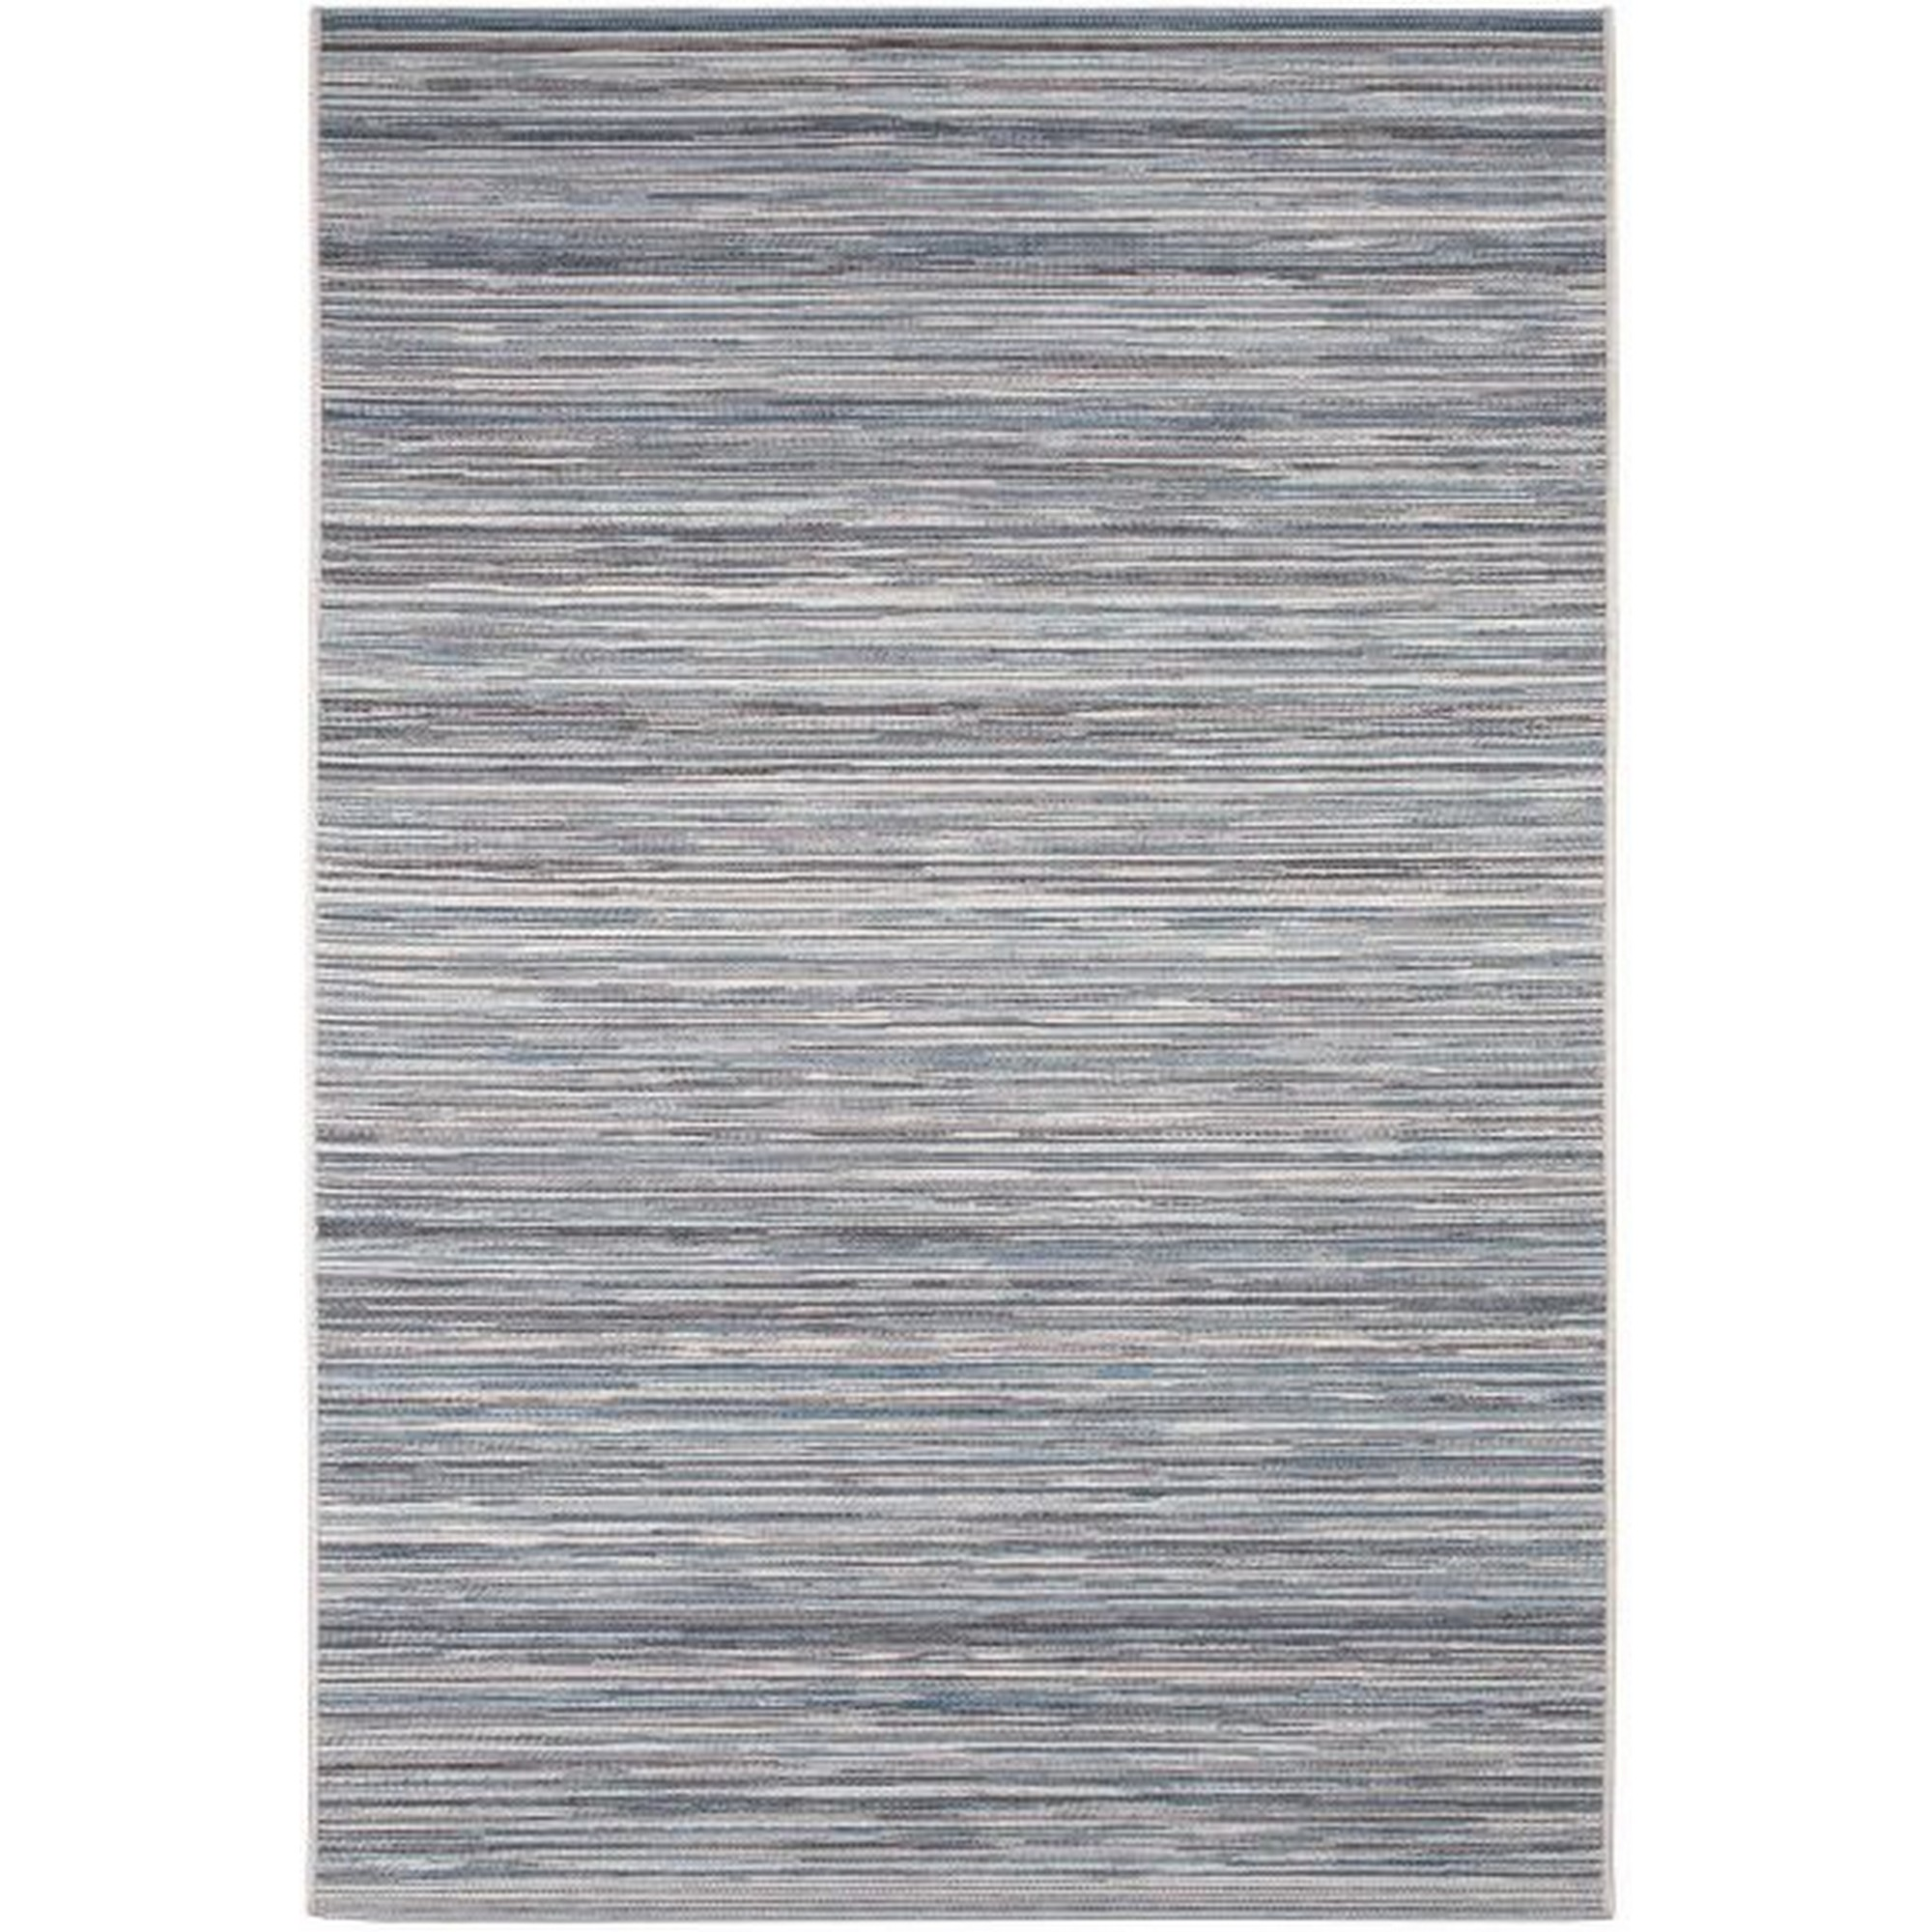 Brighton Rugs 98122 6001 in Blue